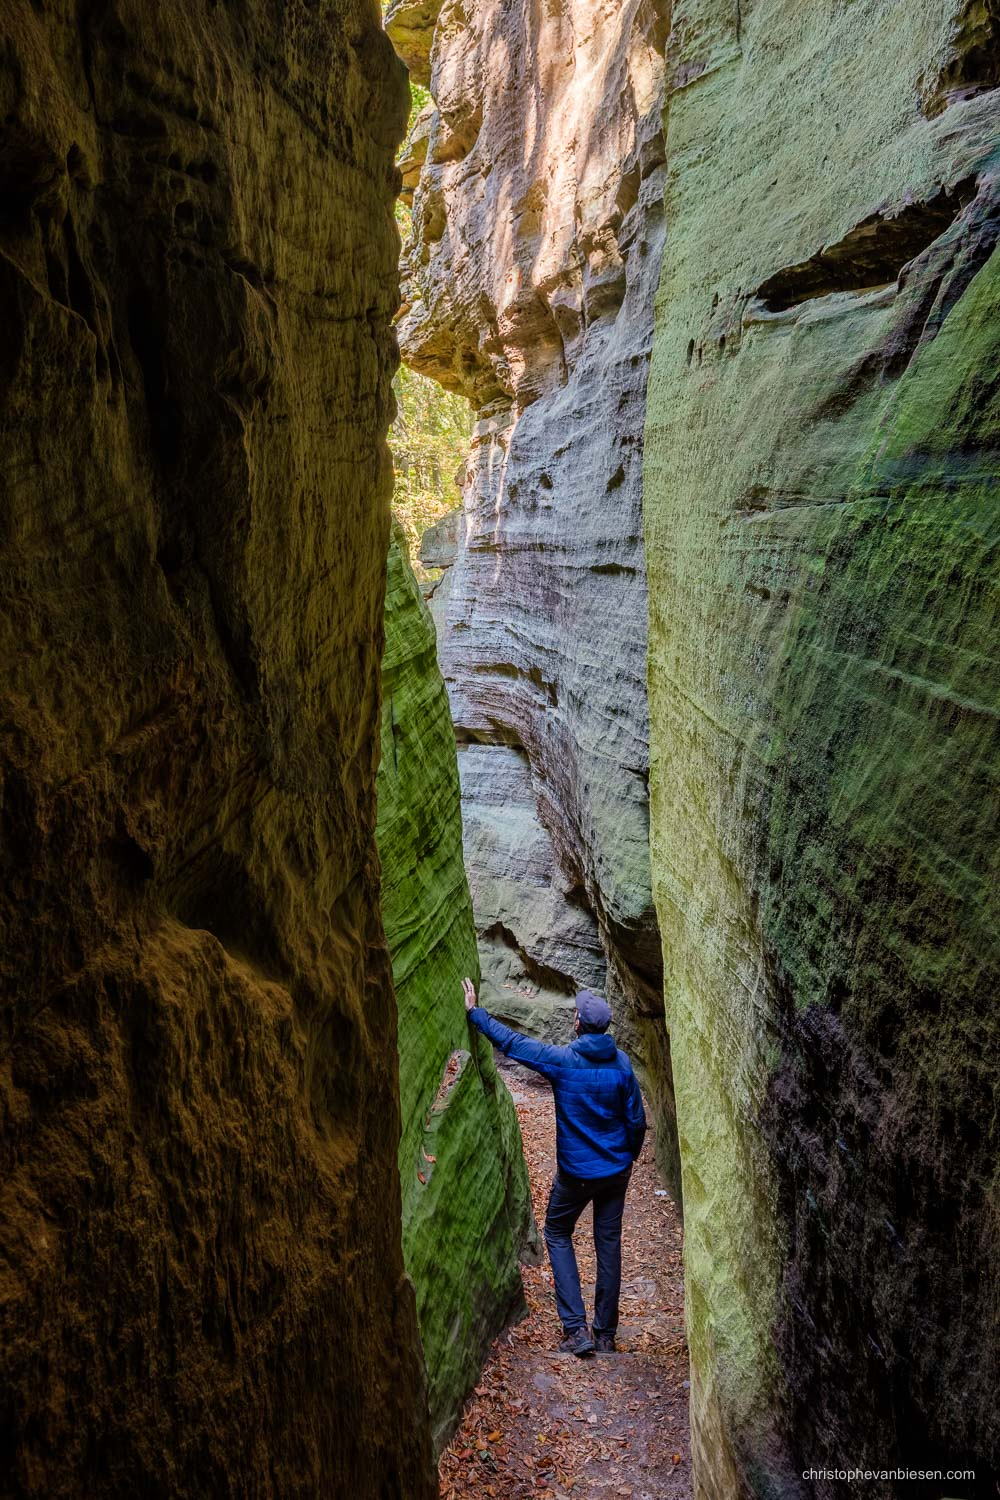 Visit the Mullerthal - Luxembourg - Explorer hiking in the narrow canyons of the Mullerthal region in Luxembourg - Exploring the Mullerthal